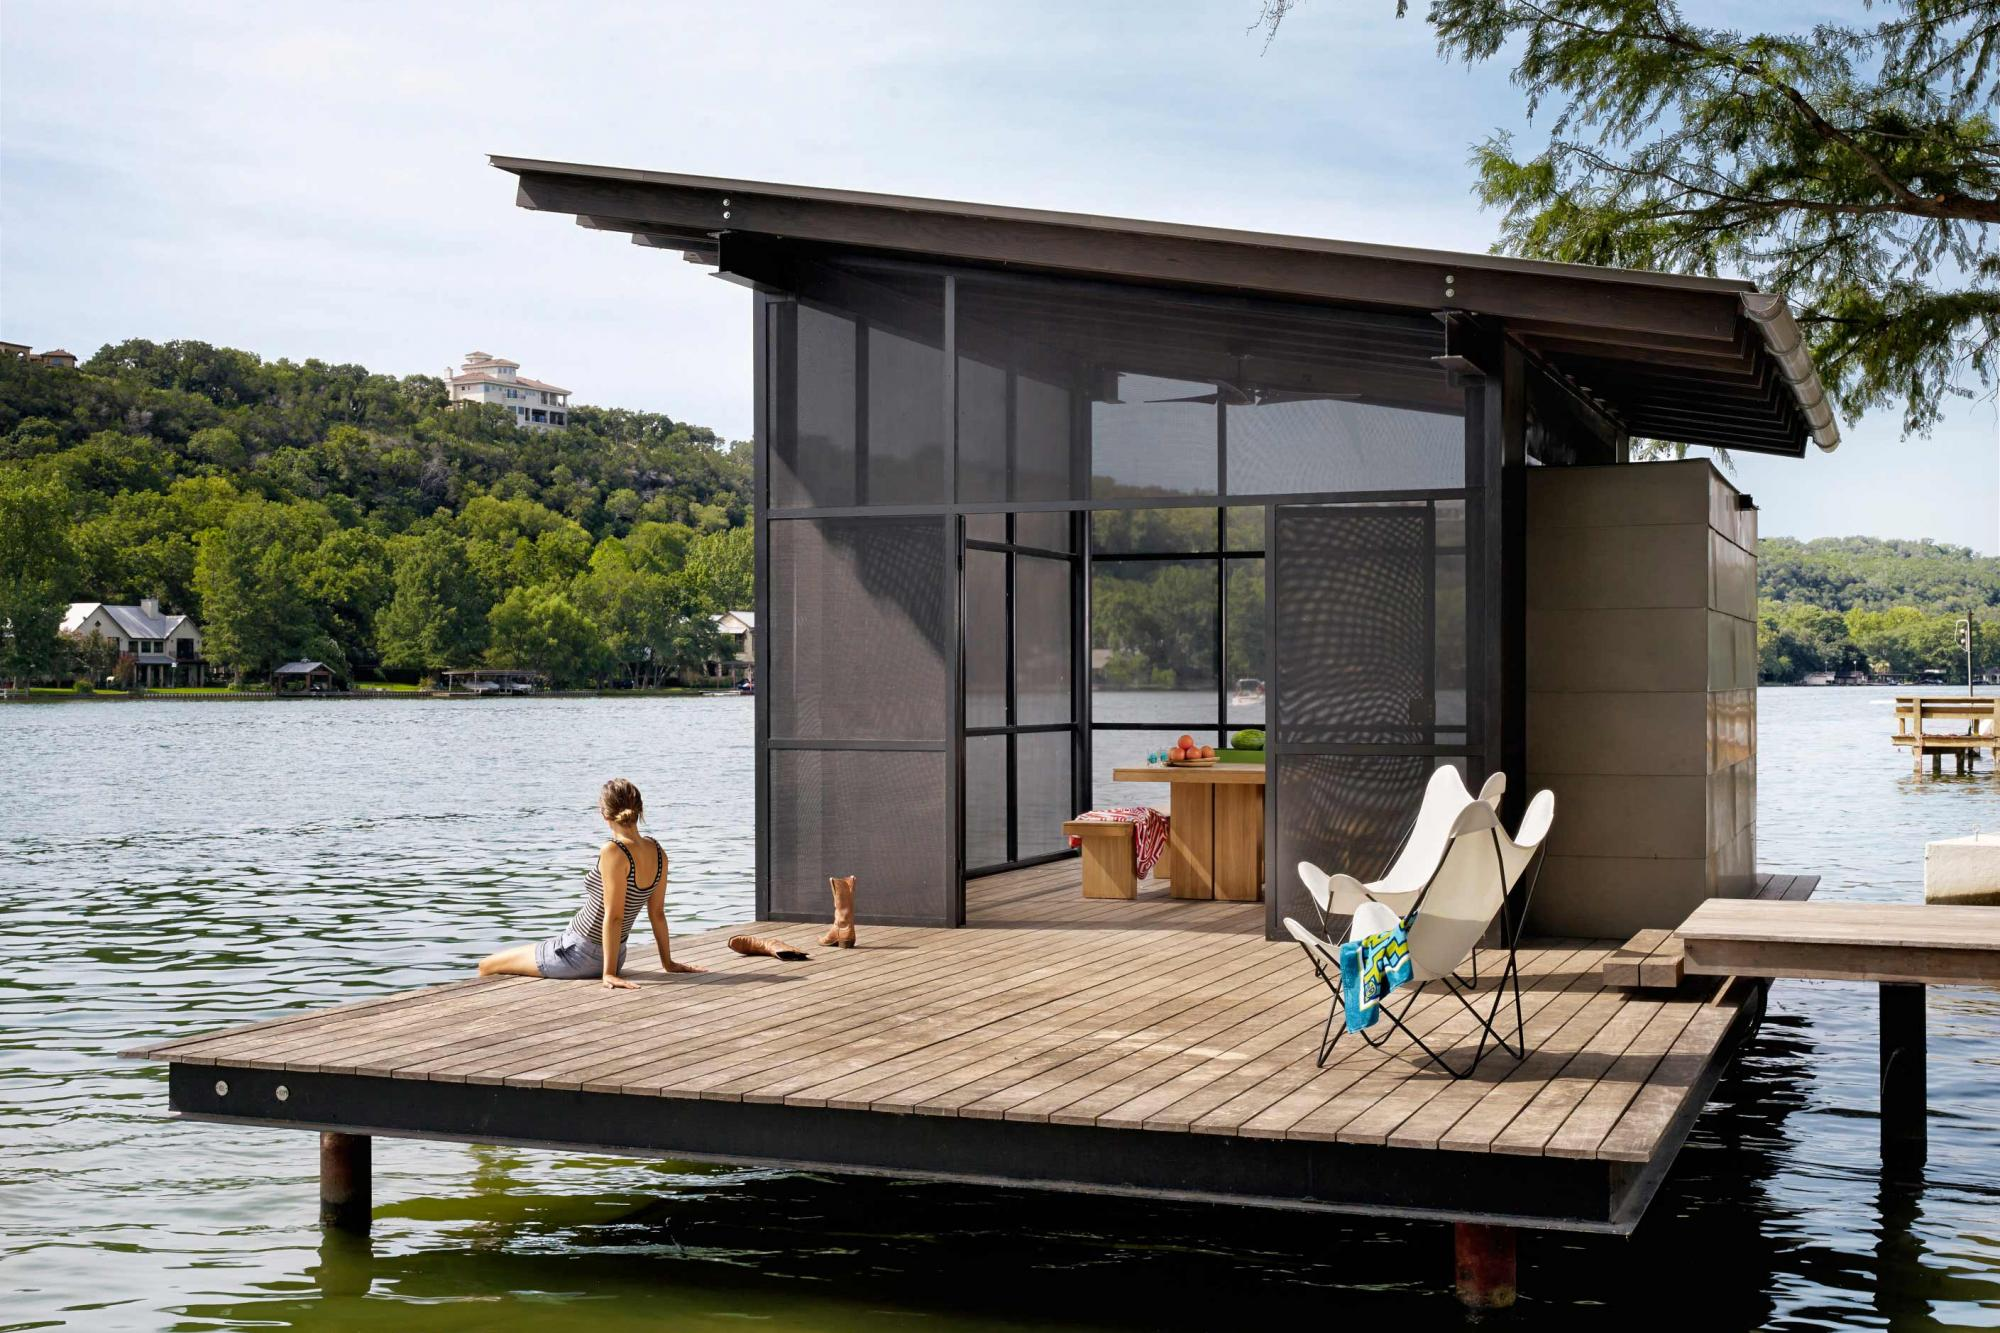 Situated at the confluence of Hog Pen Creek and Lake Austin, a screened pavilion by the water's edge provides a place that evokes the playfulness of summer on the lake.